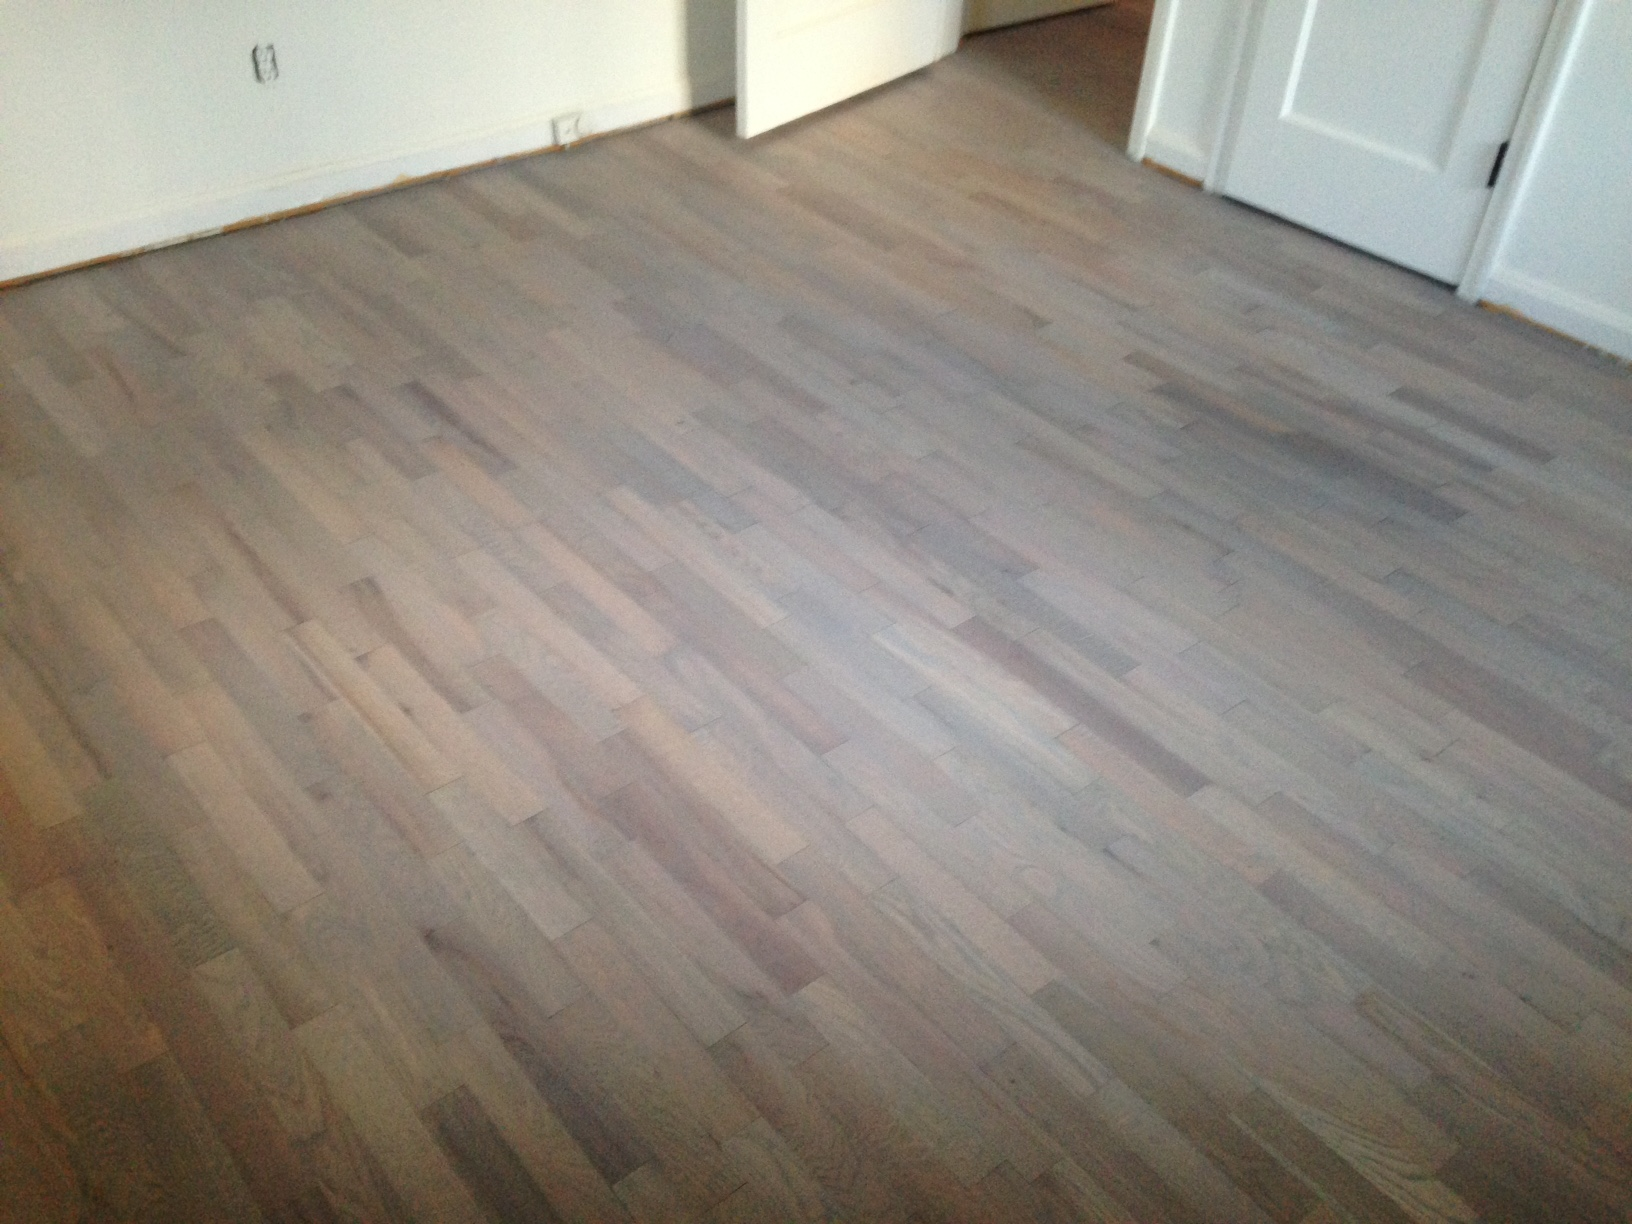 Refinishing wood floors for a beach house look dan 39 s for Flor flooring